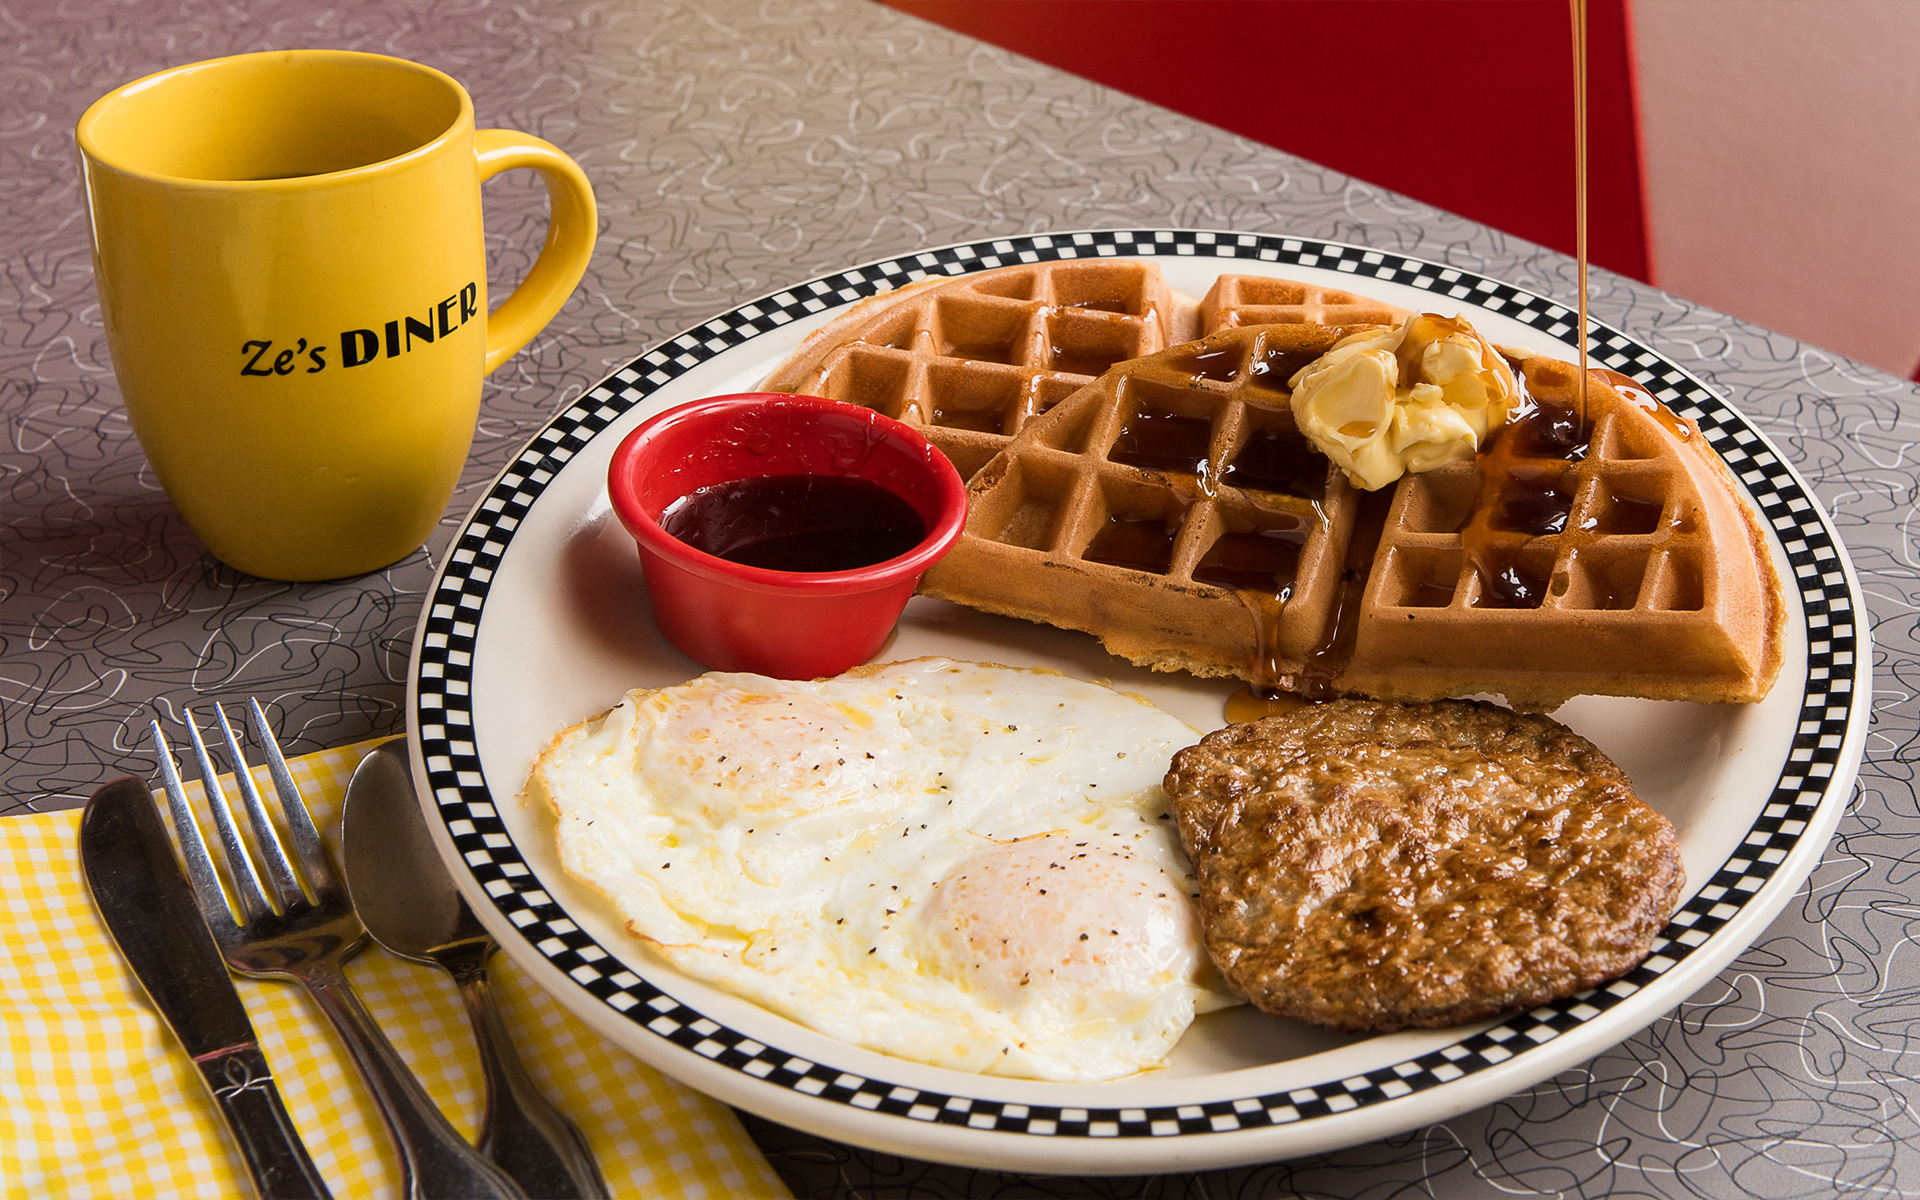 Eggs, Waffles, Sausage, Breakfast & Coffee